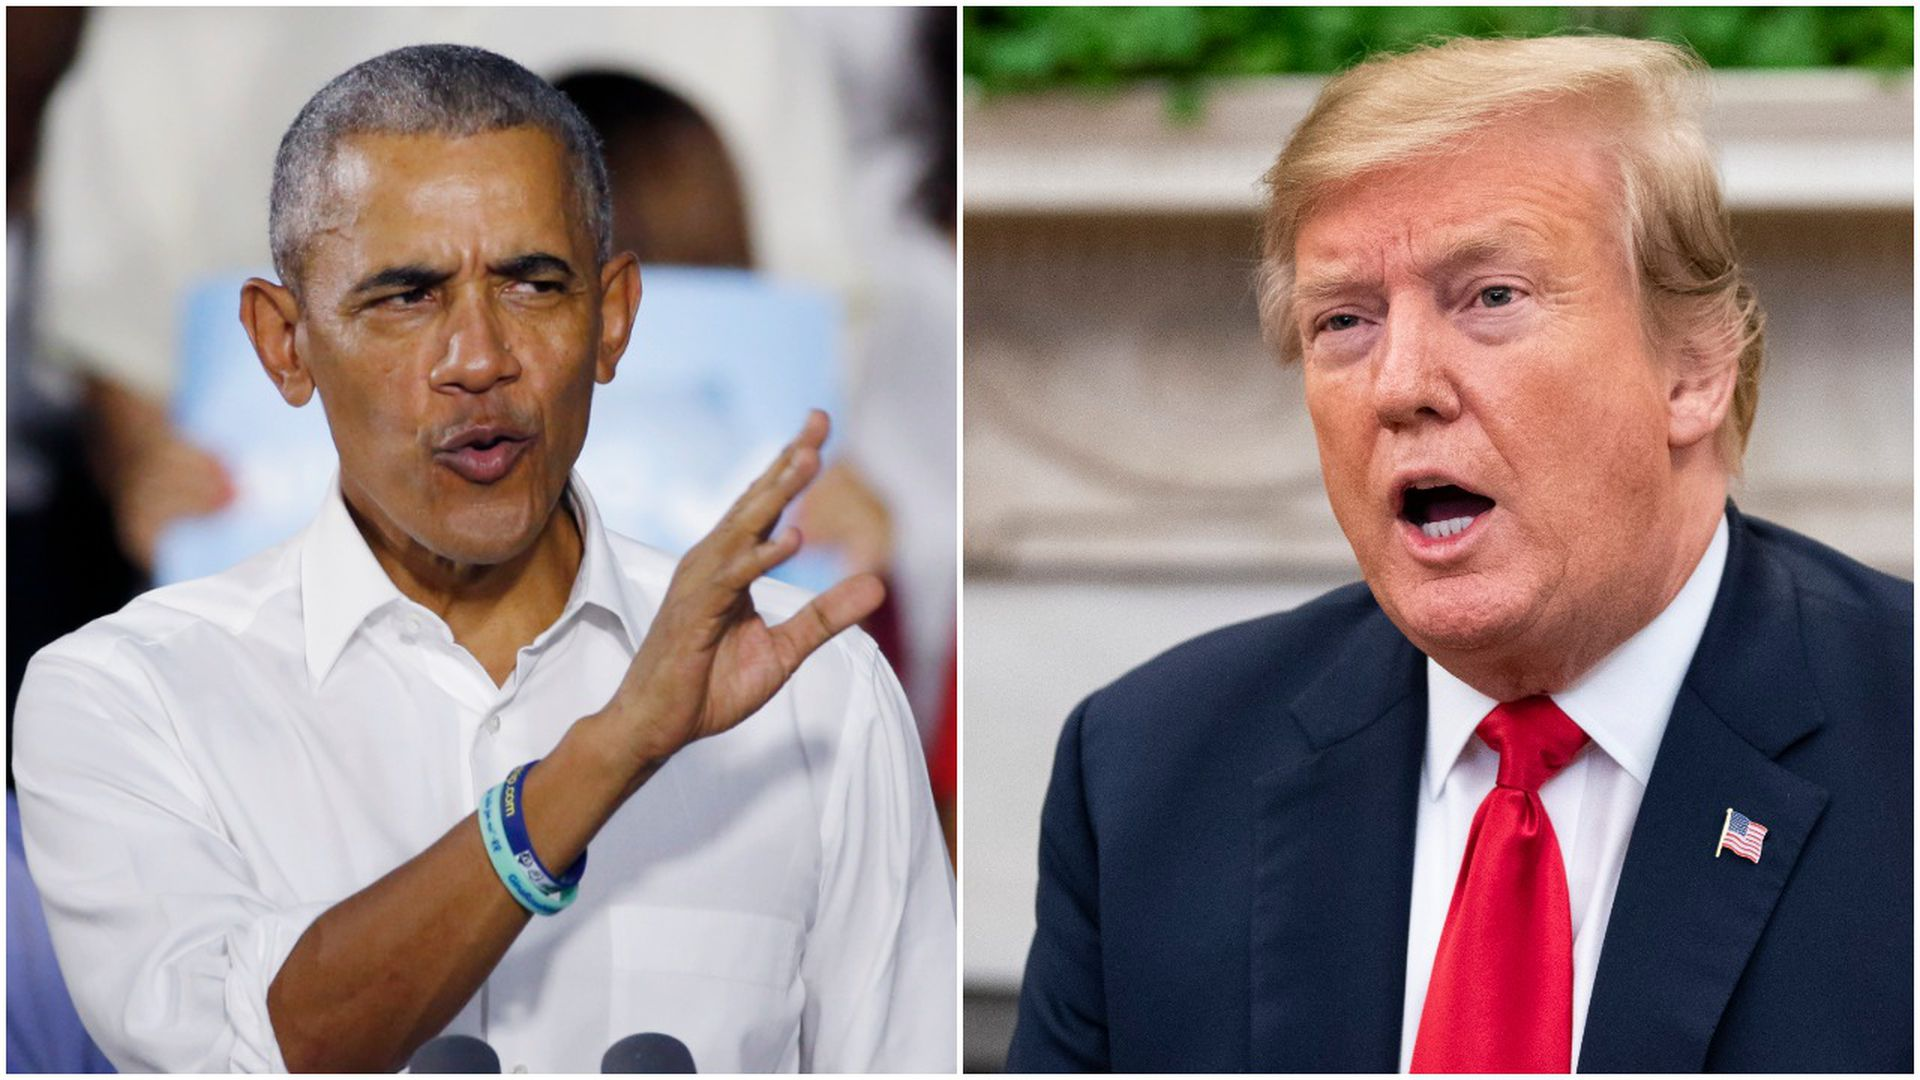 A split screen of former President Obama and President Trump, who are both speaking.